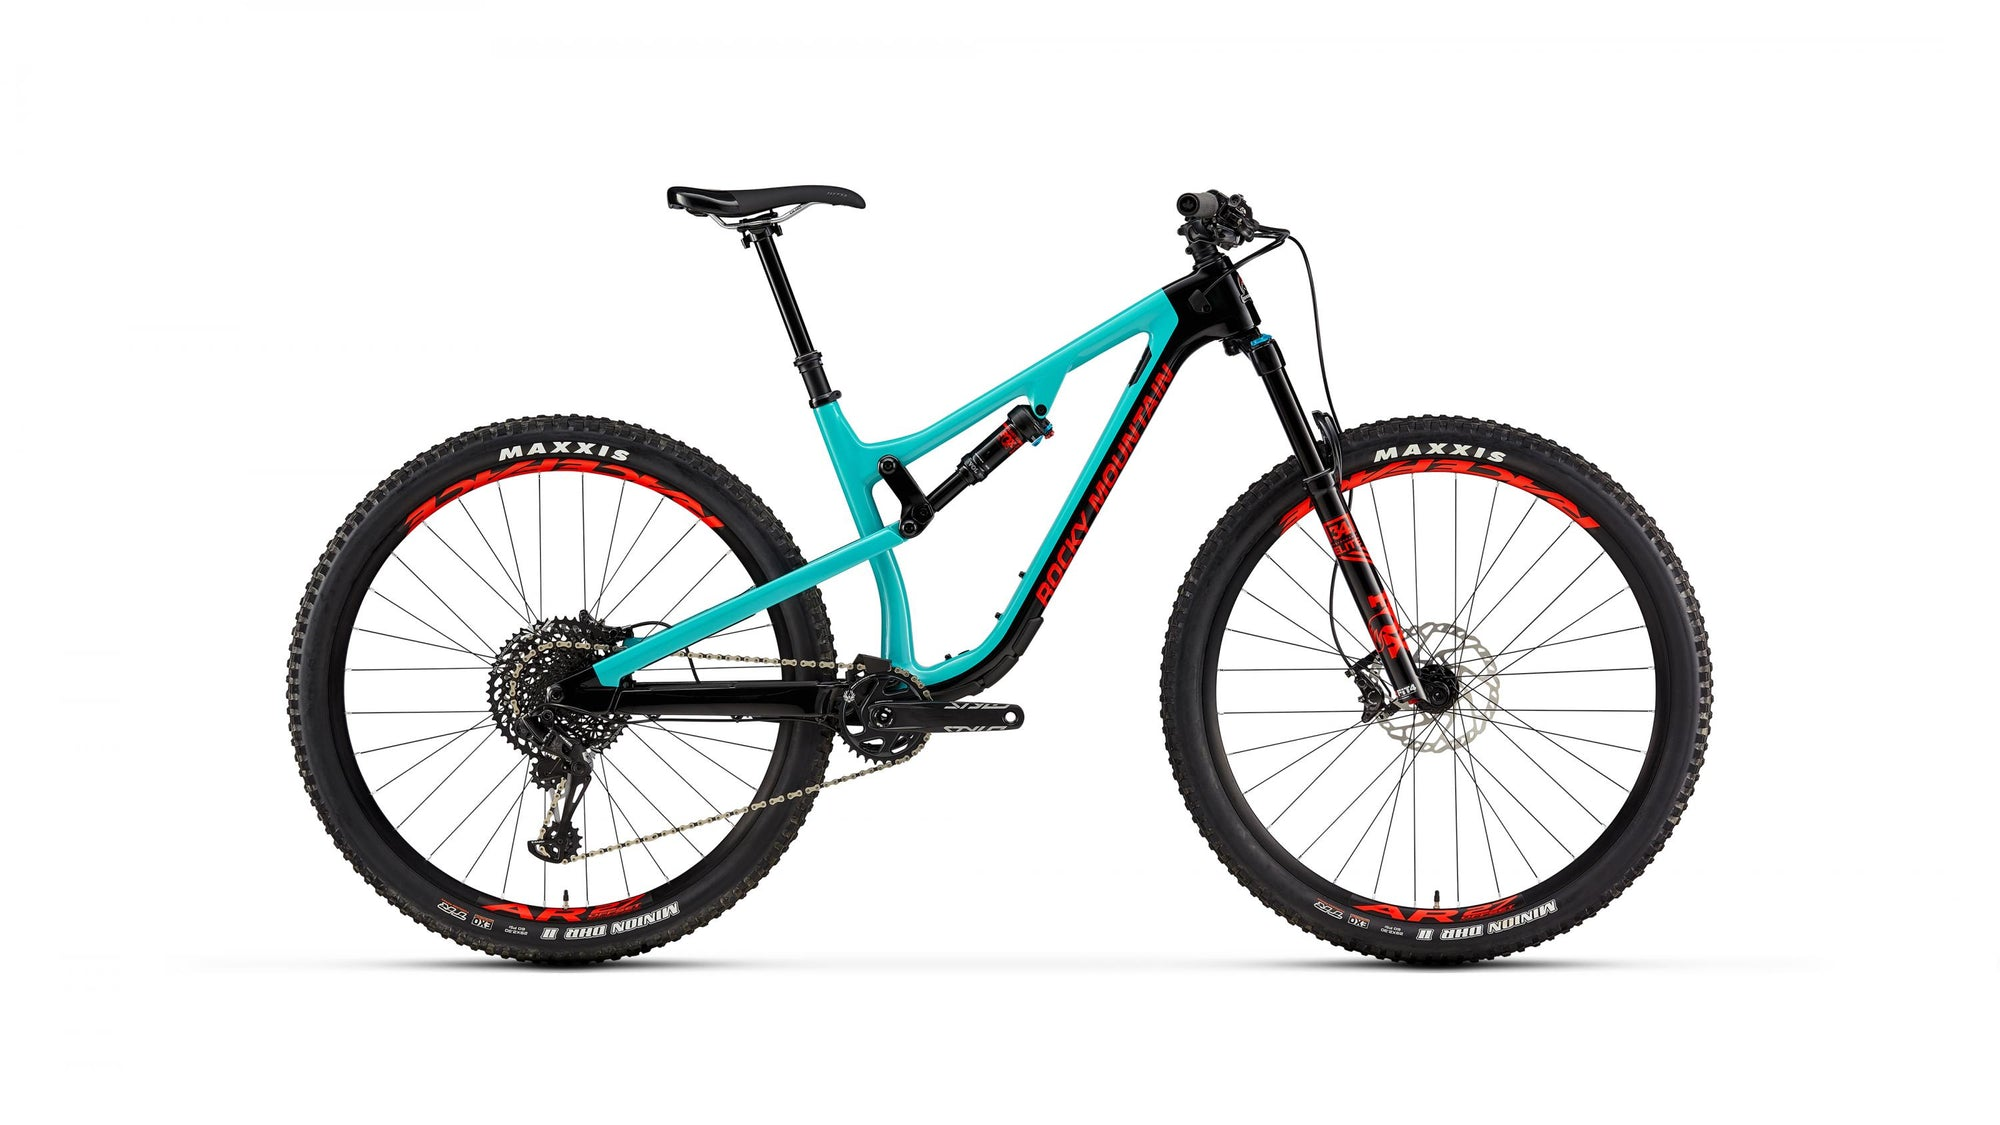 Rocky Mountain Instinct Carbon 70 165 - 172.5cm (SM) - TUNE cycles